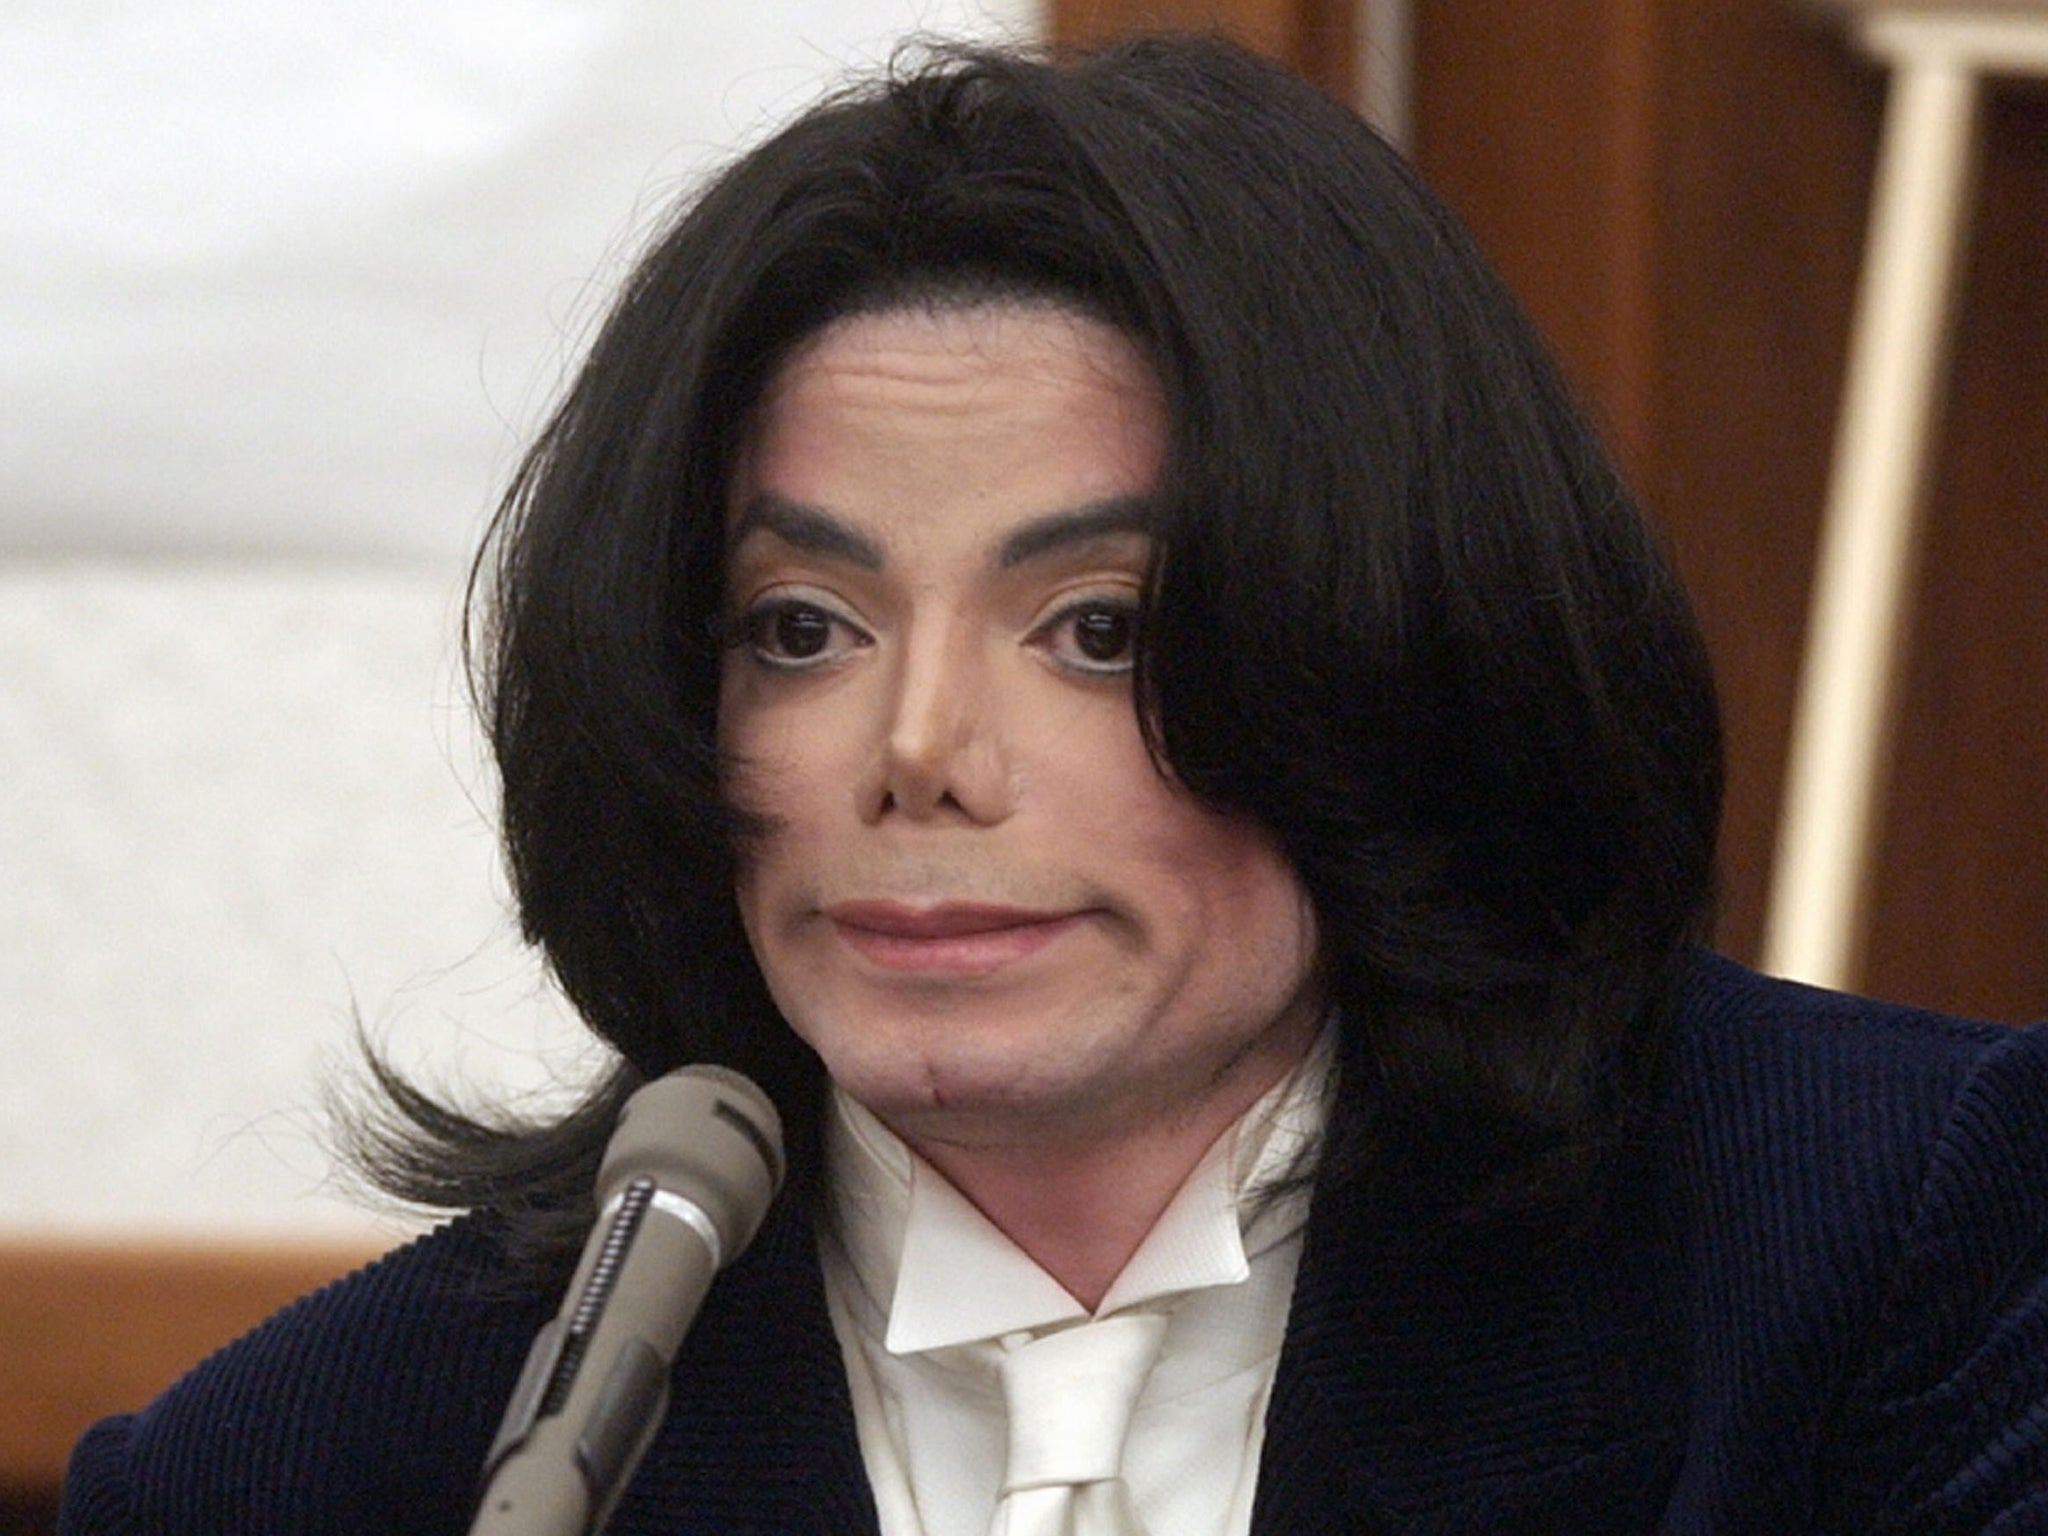 Michael Jackson's Neverland Ranch sells to billionaire for $78m less than 2016 asking price